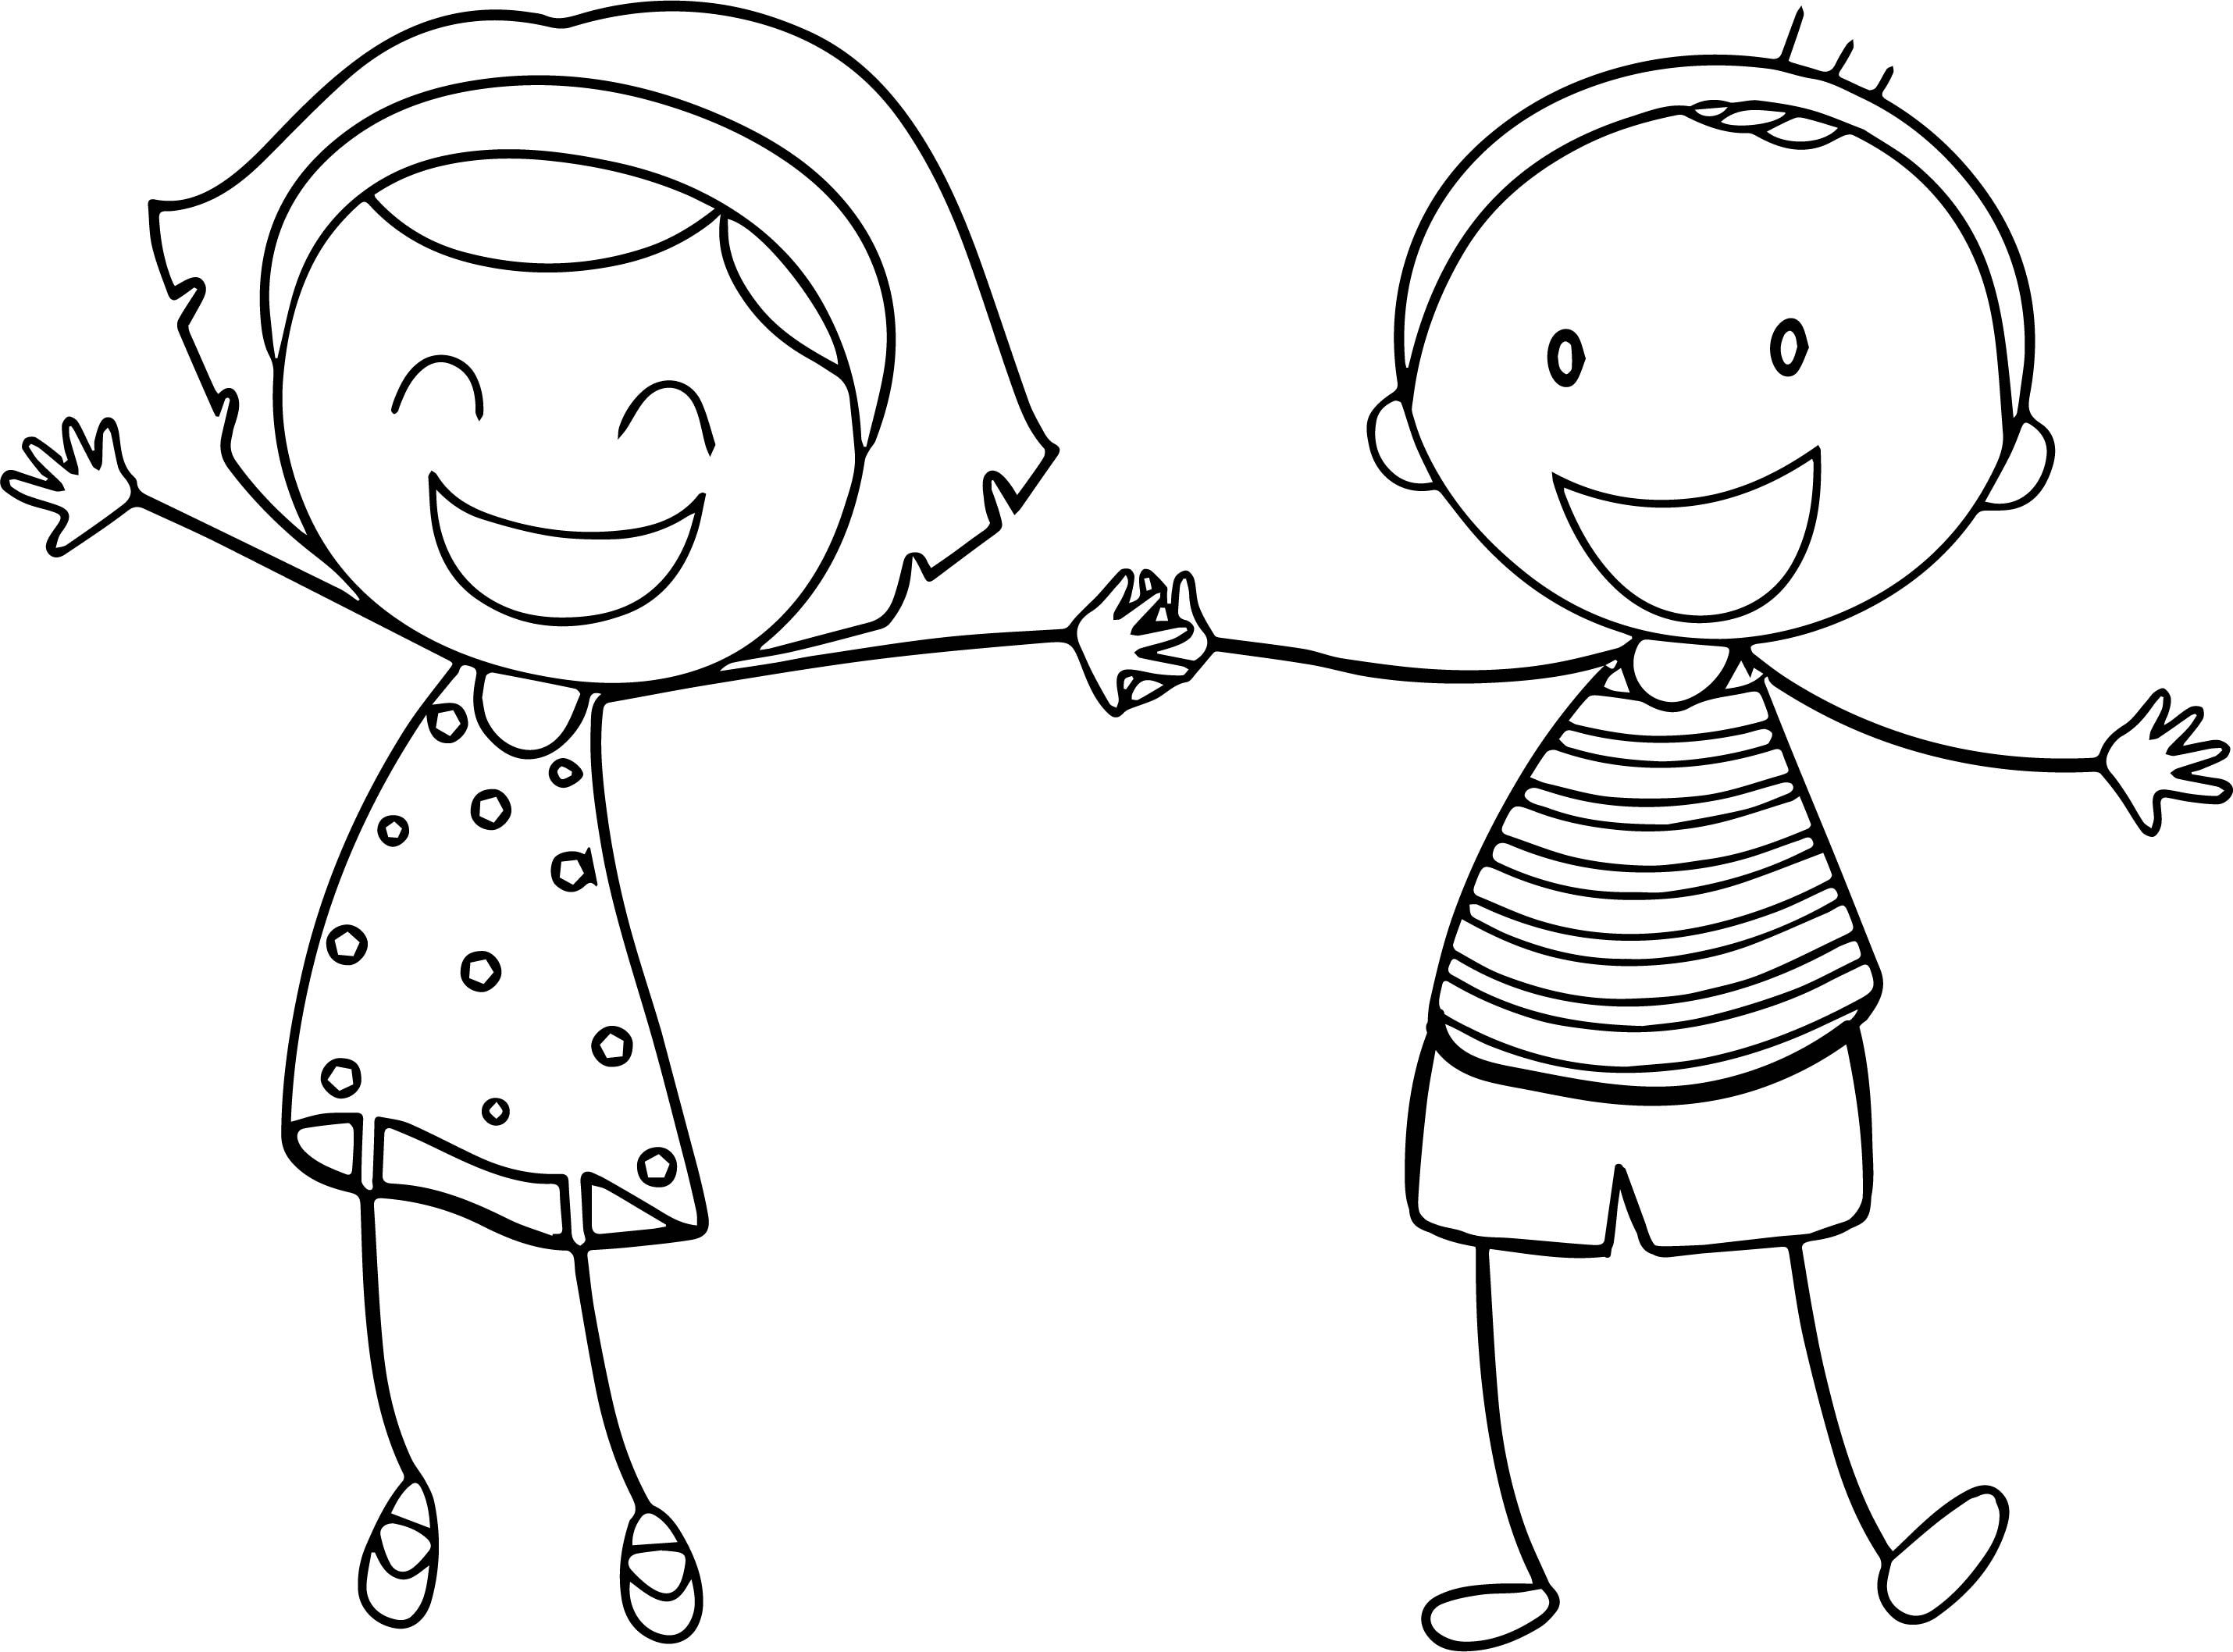 Awesome Basic Funny Boy Girl Coloring Sheet Printable Free Pages Boy And Girl Drawing Coloring Pages For Girls Cute Coloring Pages